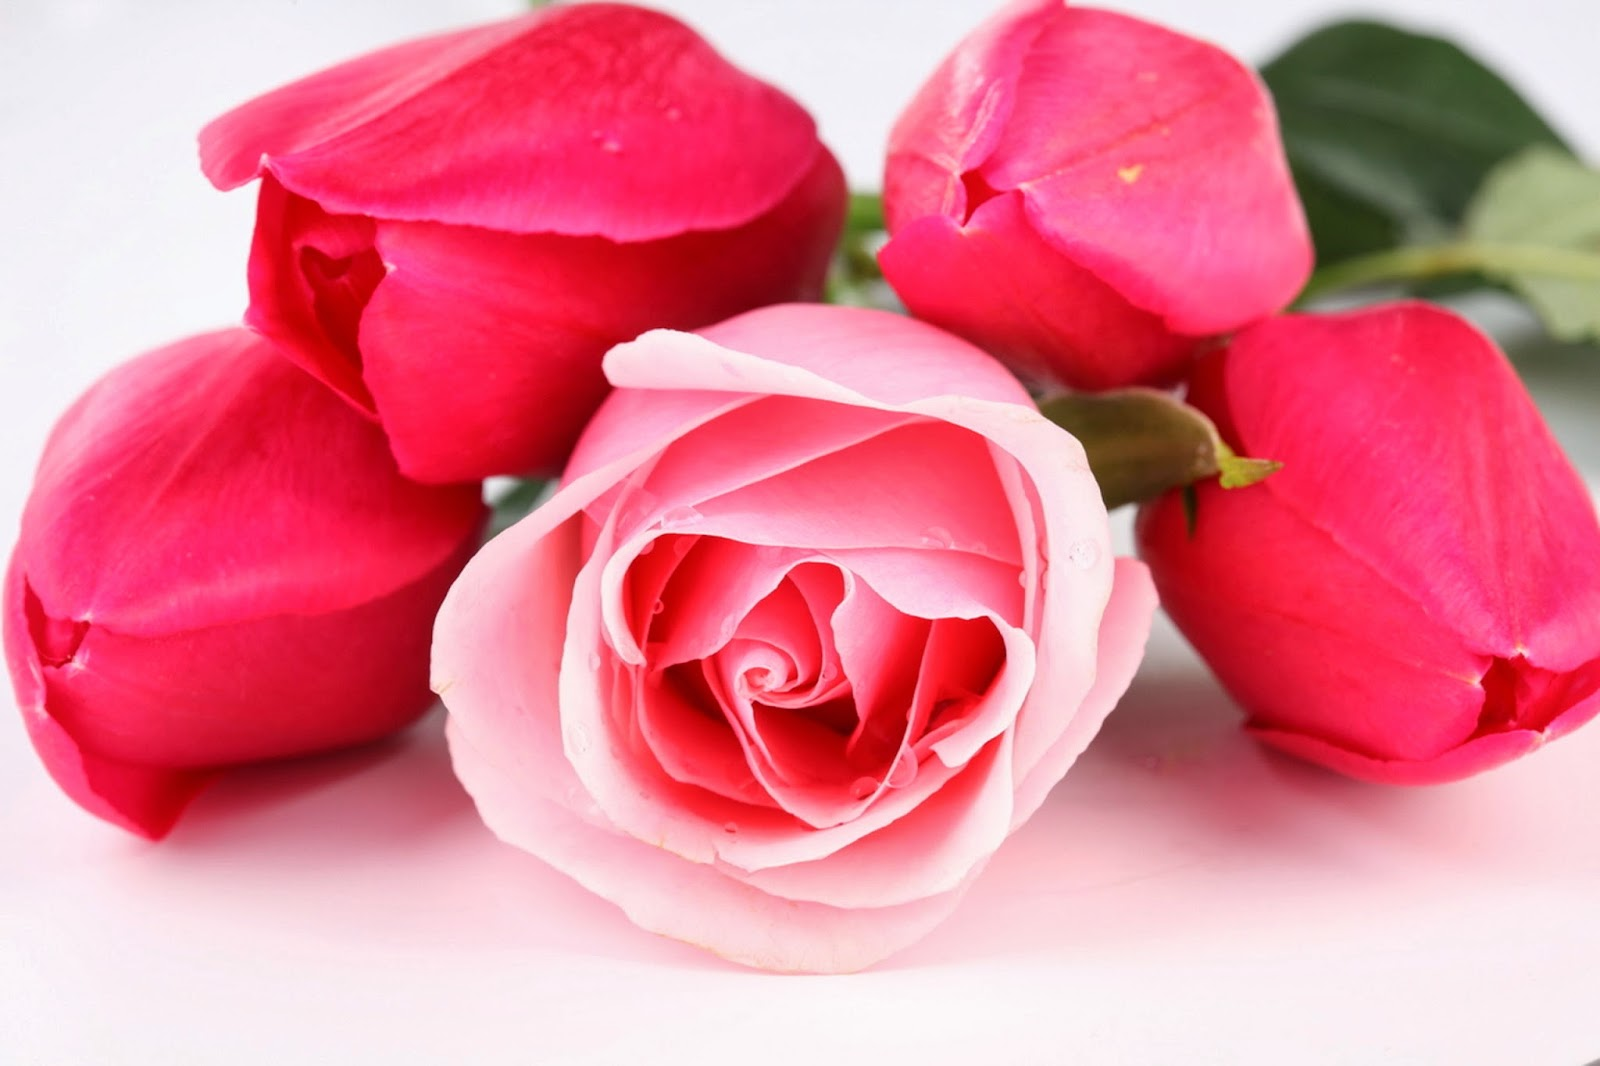 Beautiful red pink roses flowers hd wallpapers izmirmasajfo